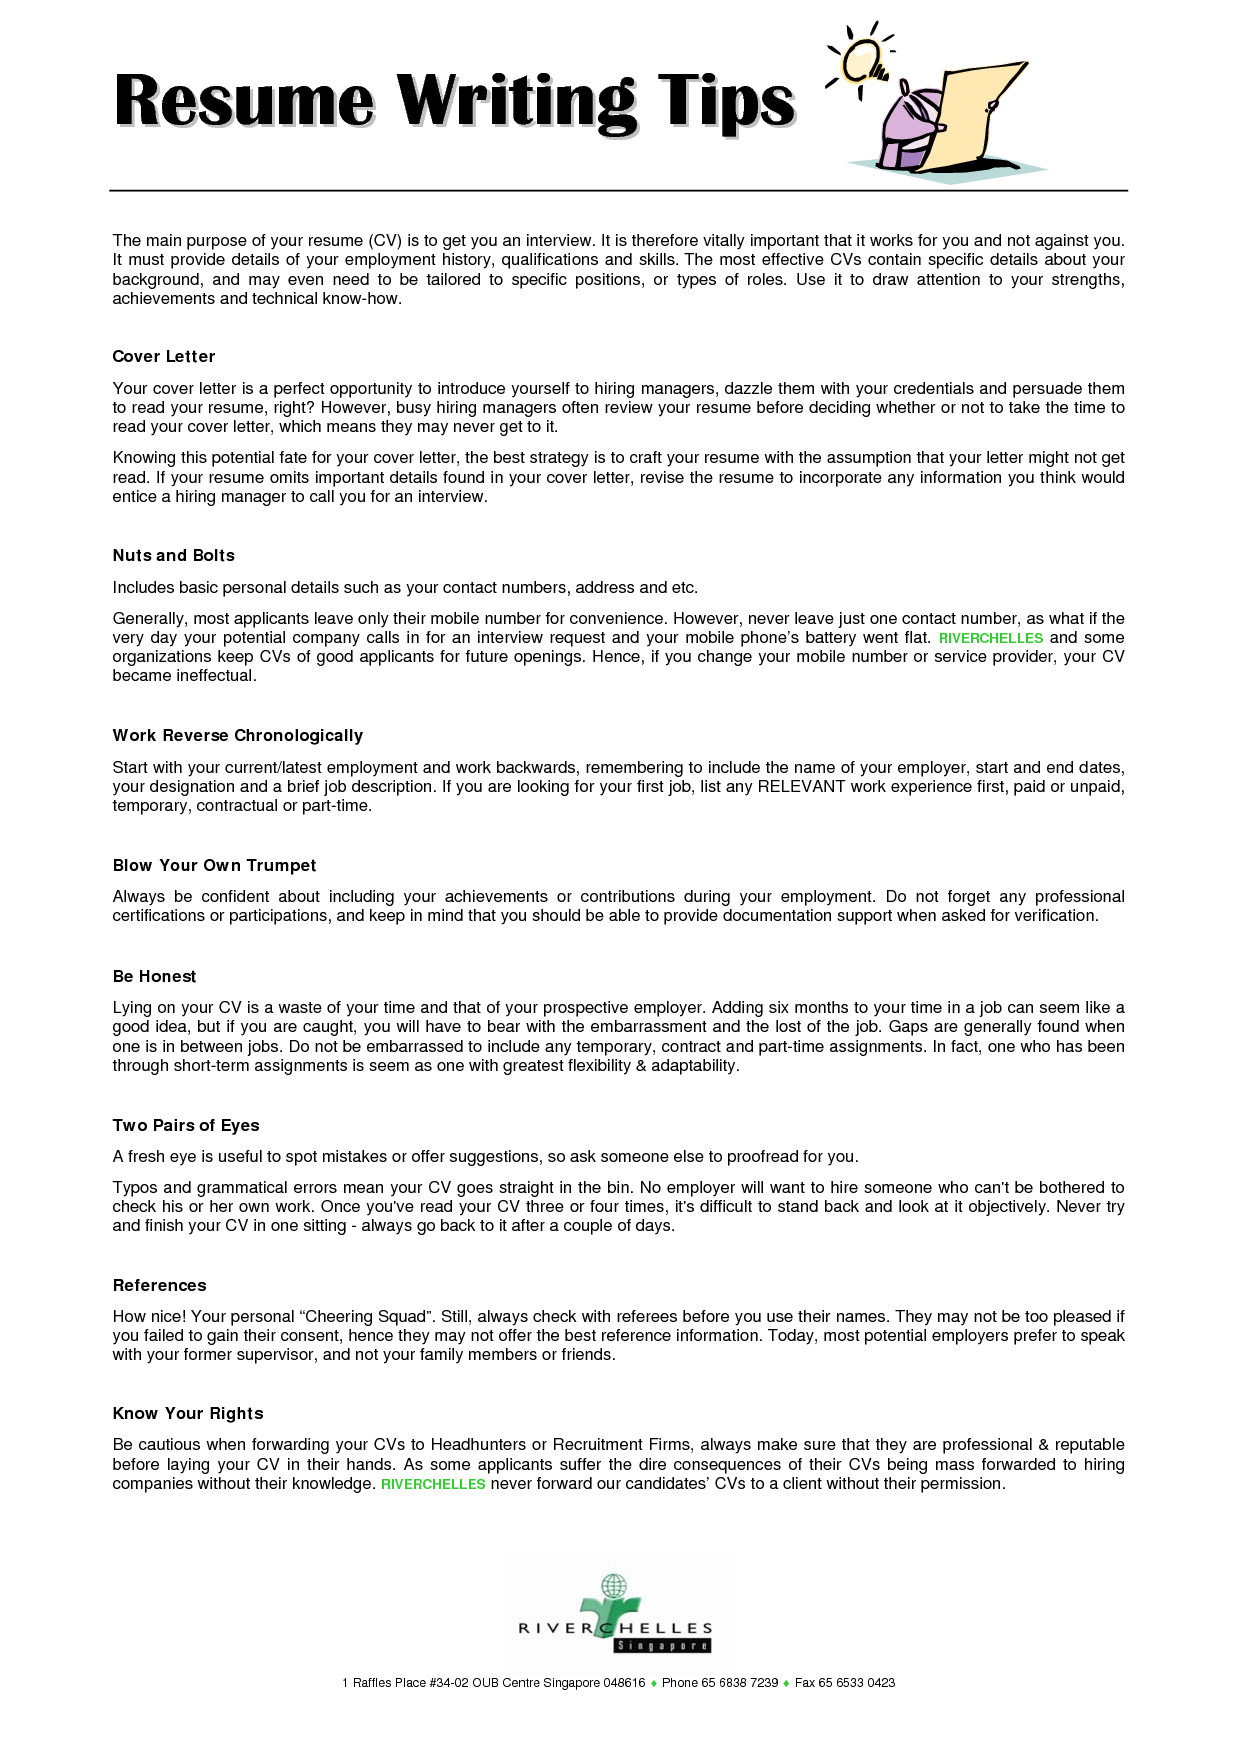 Tips For Creating A Resume Ukrandiffusion